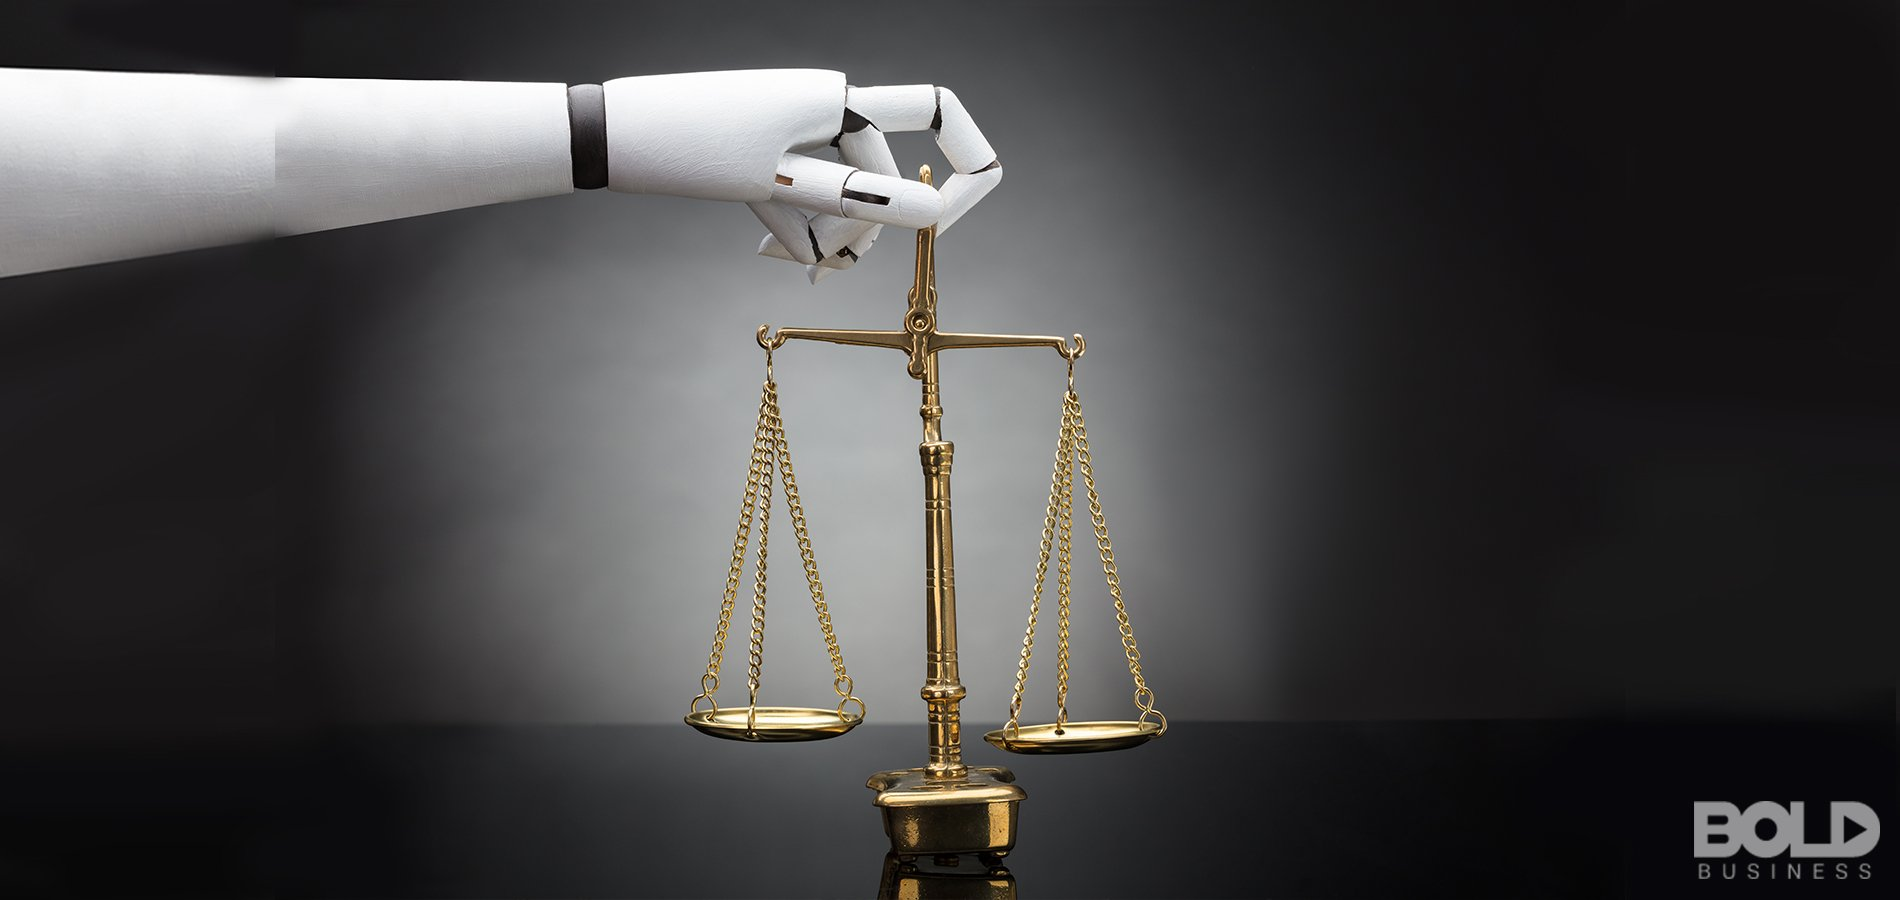 The scales of justice via robot